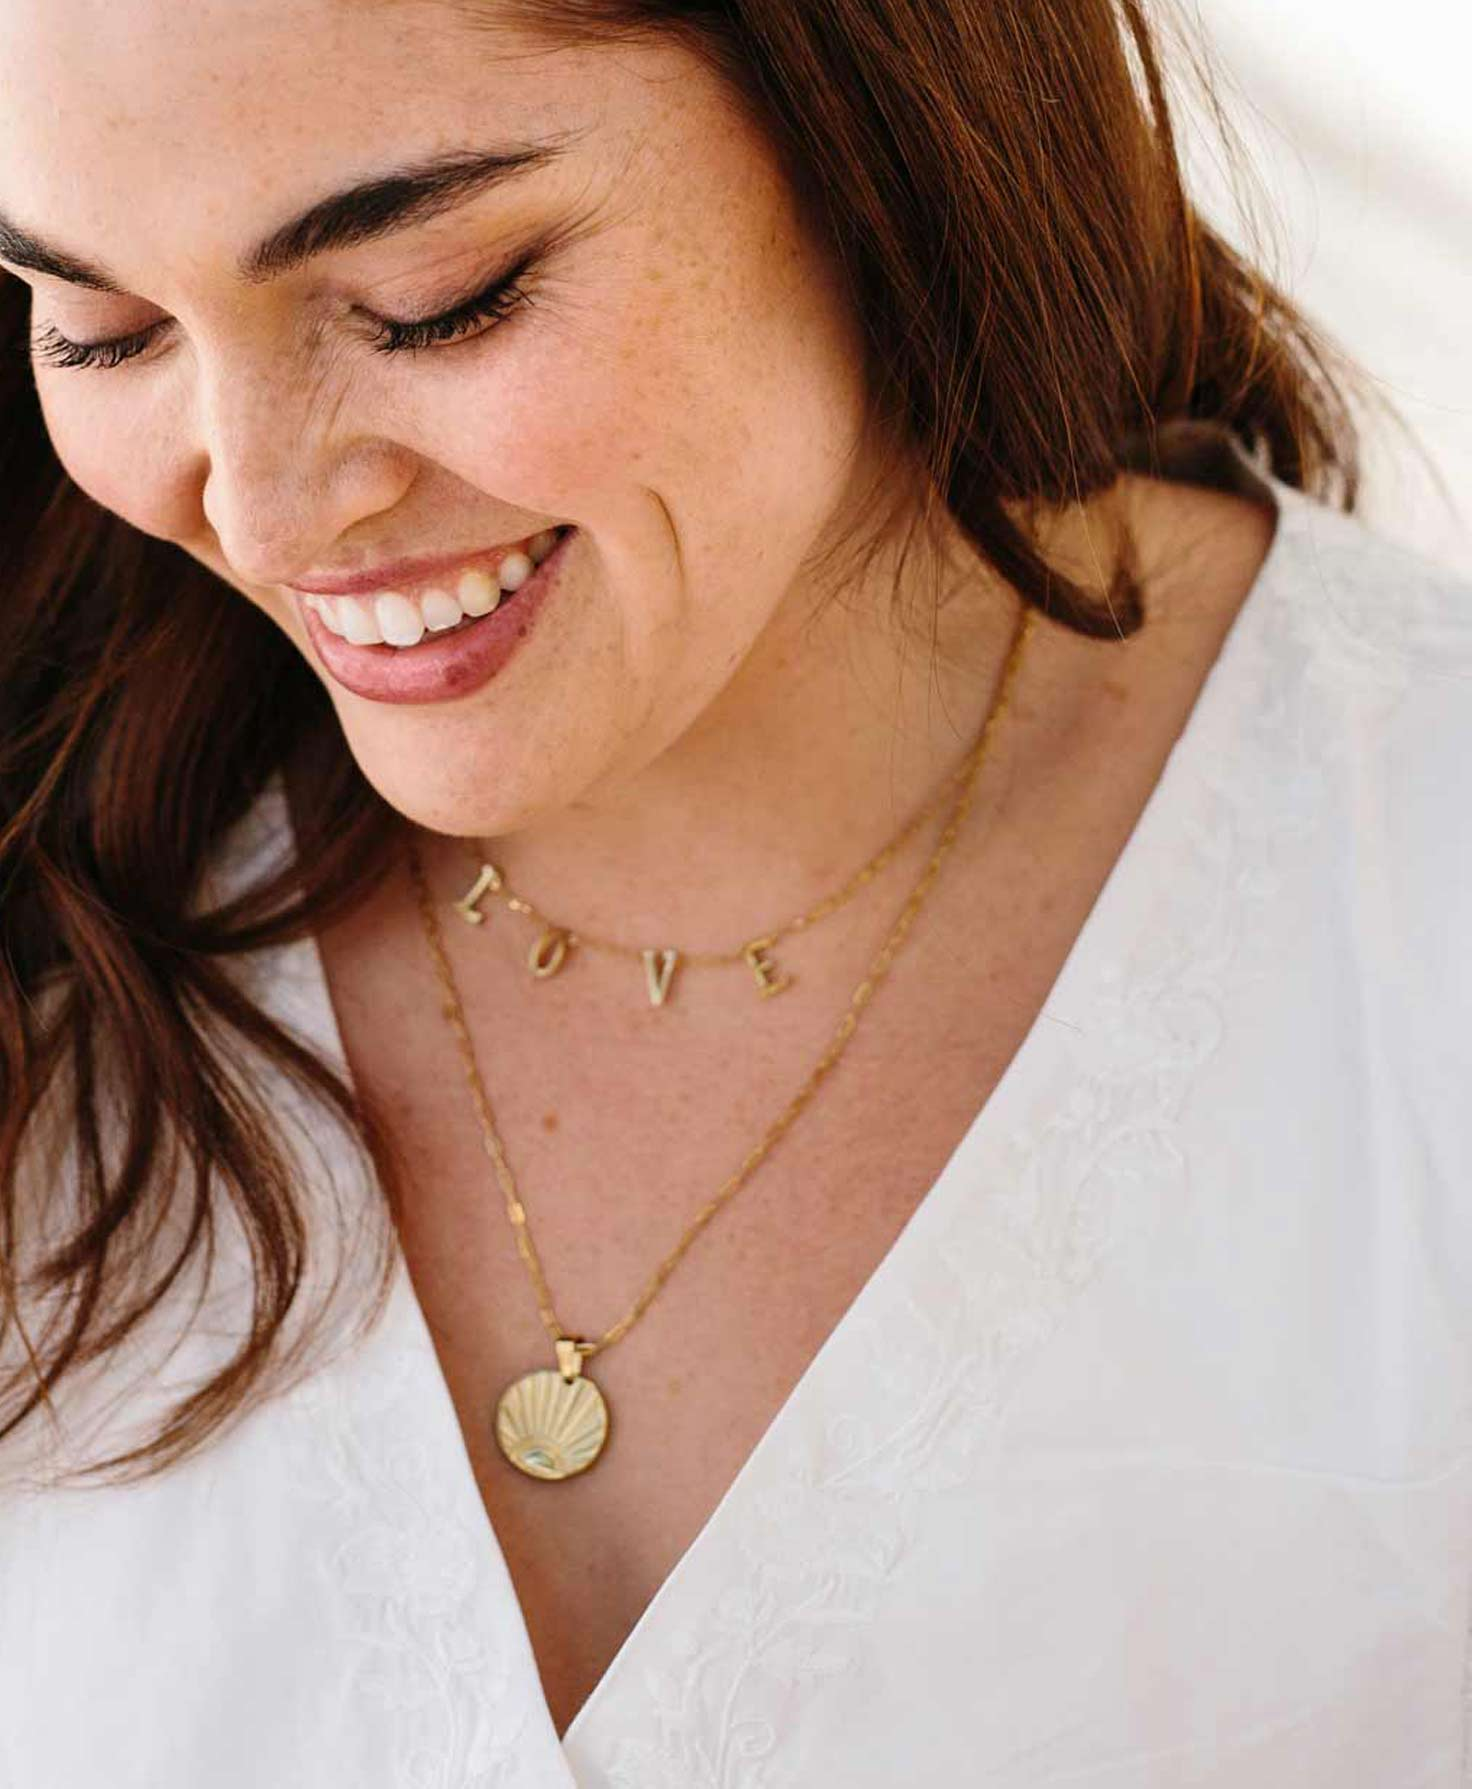 A model wears the short Beloved Necklace layered with the longer Sunrise Necklace for a long-and-short golden look.